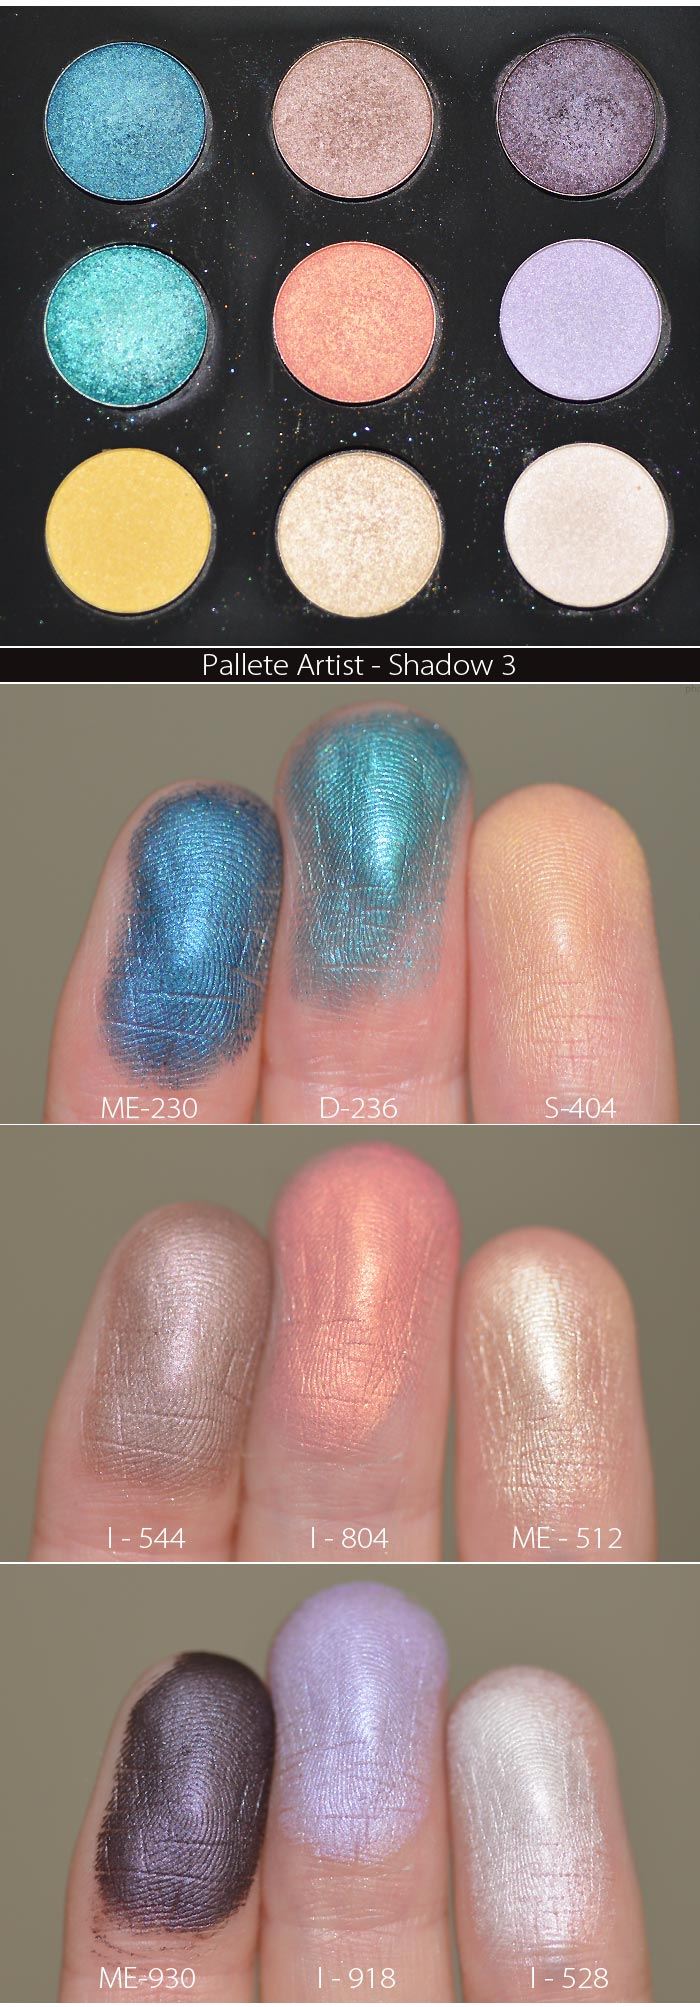 palette-artist-shadow-3